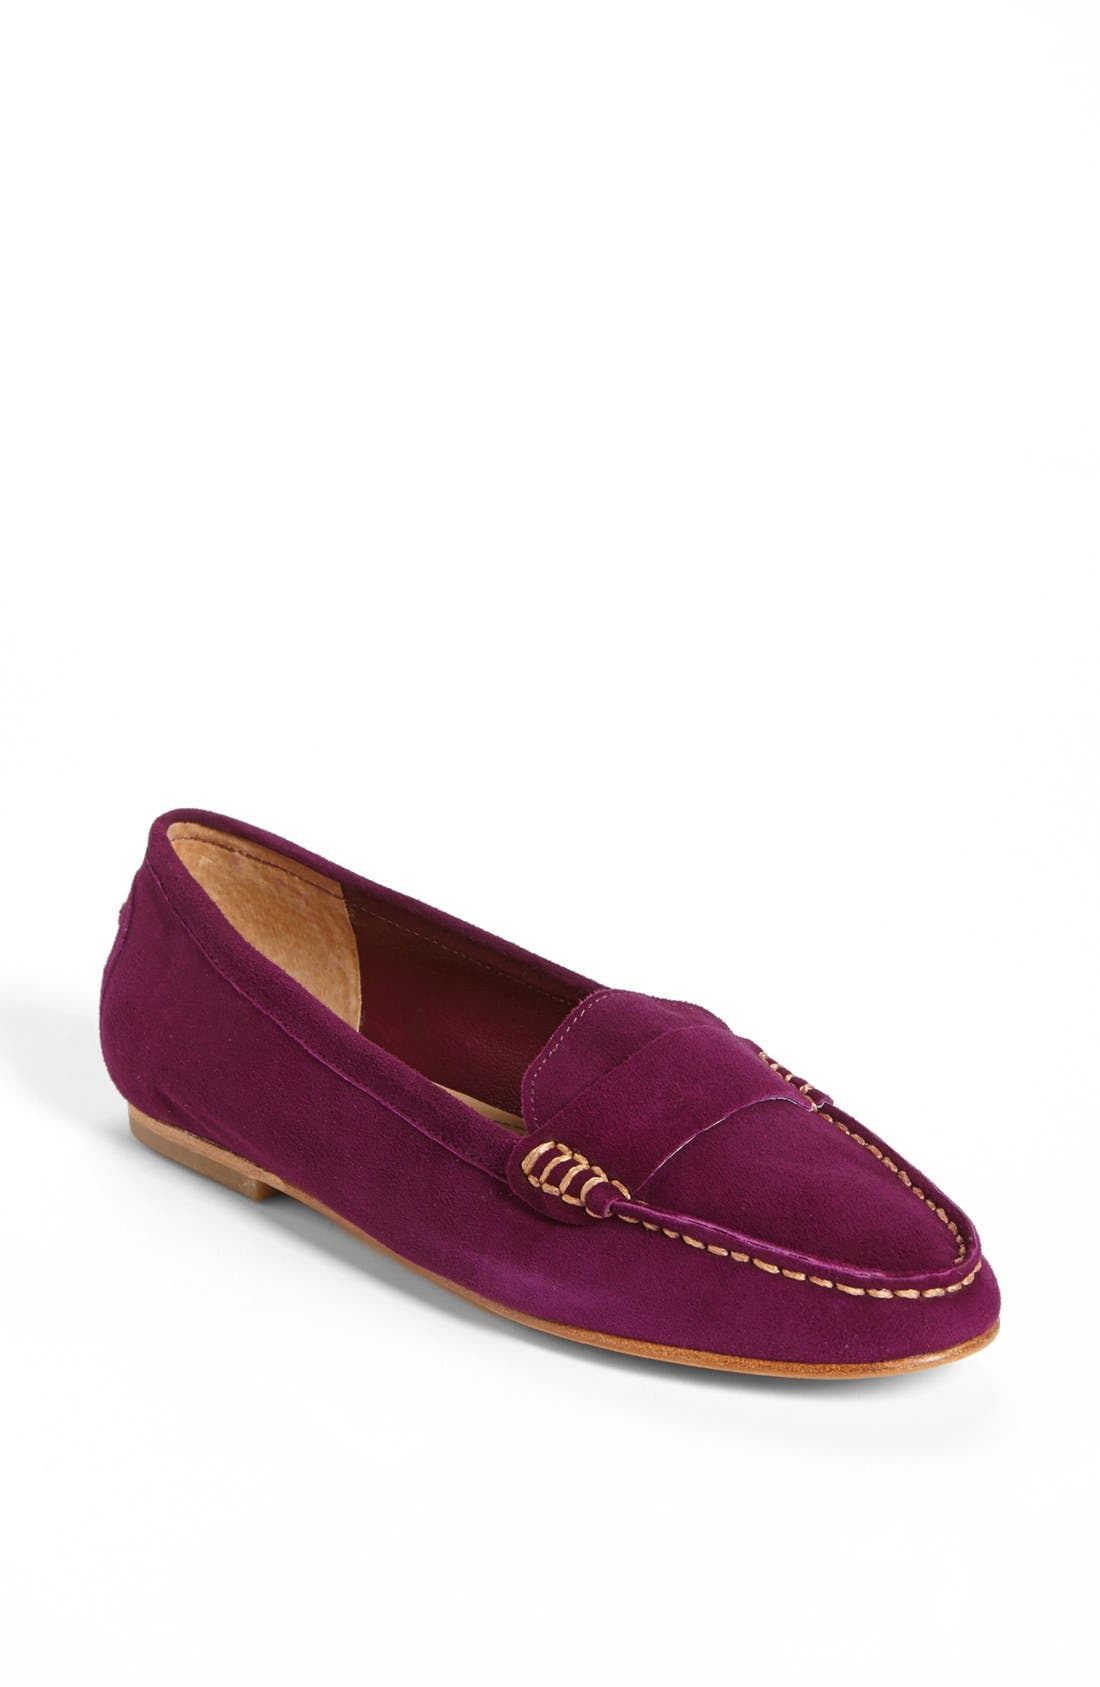 Main Image - Joie 'Dylan' Loafer